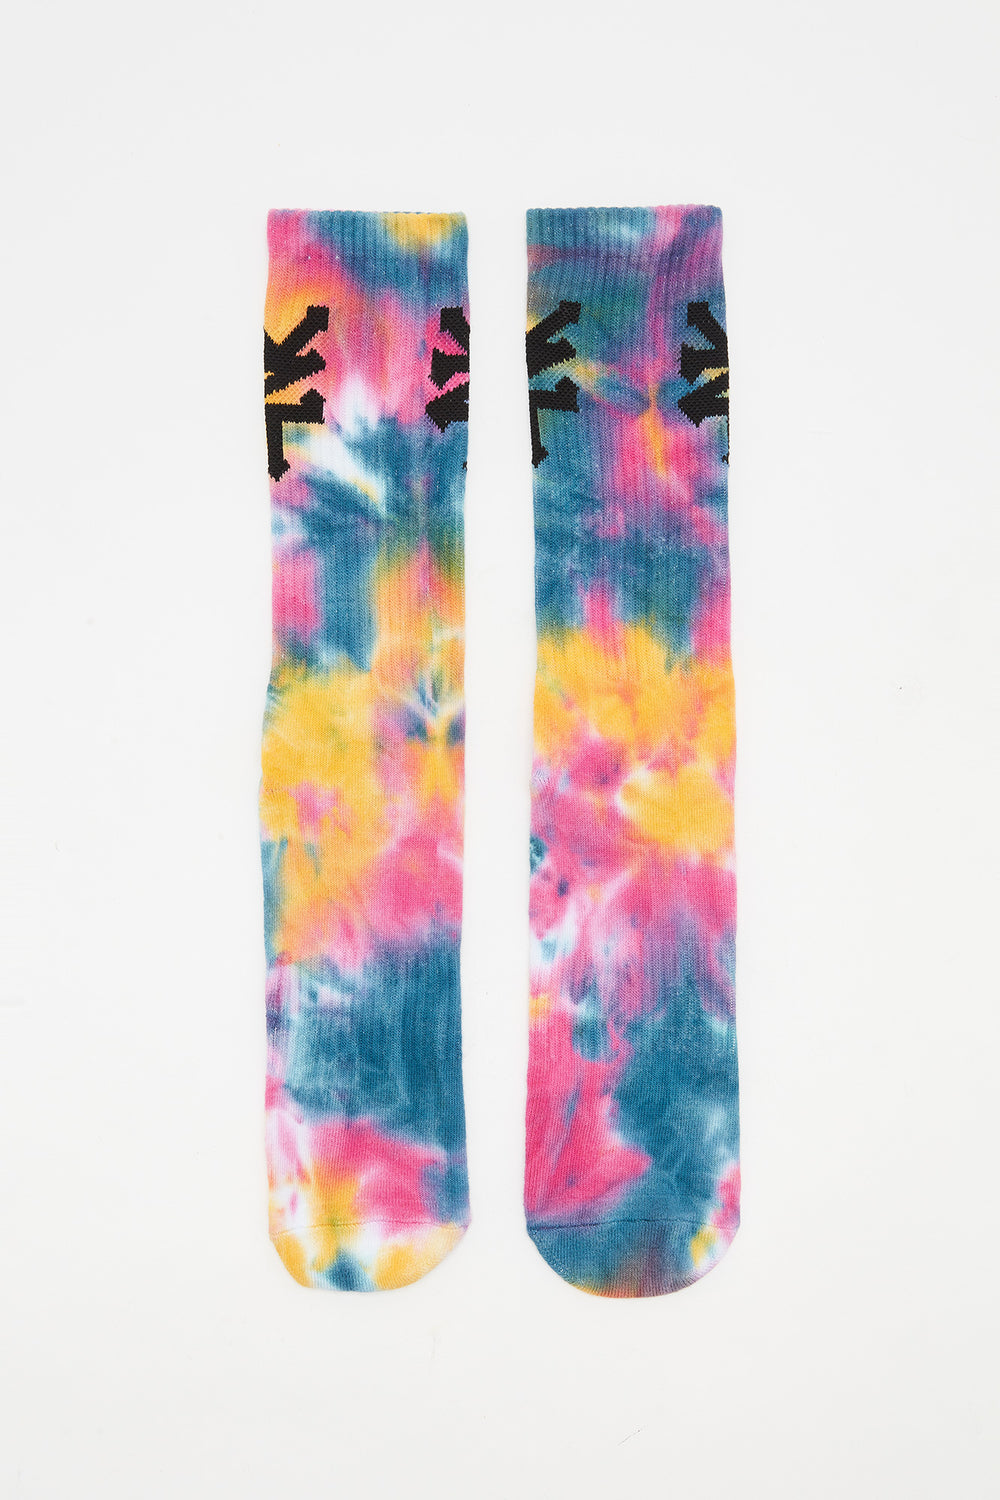 Chaussettes Tie-Dye Zoo York Homme Multi